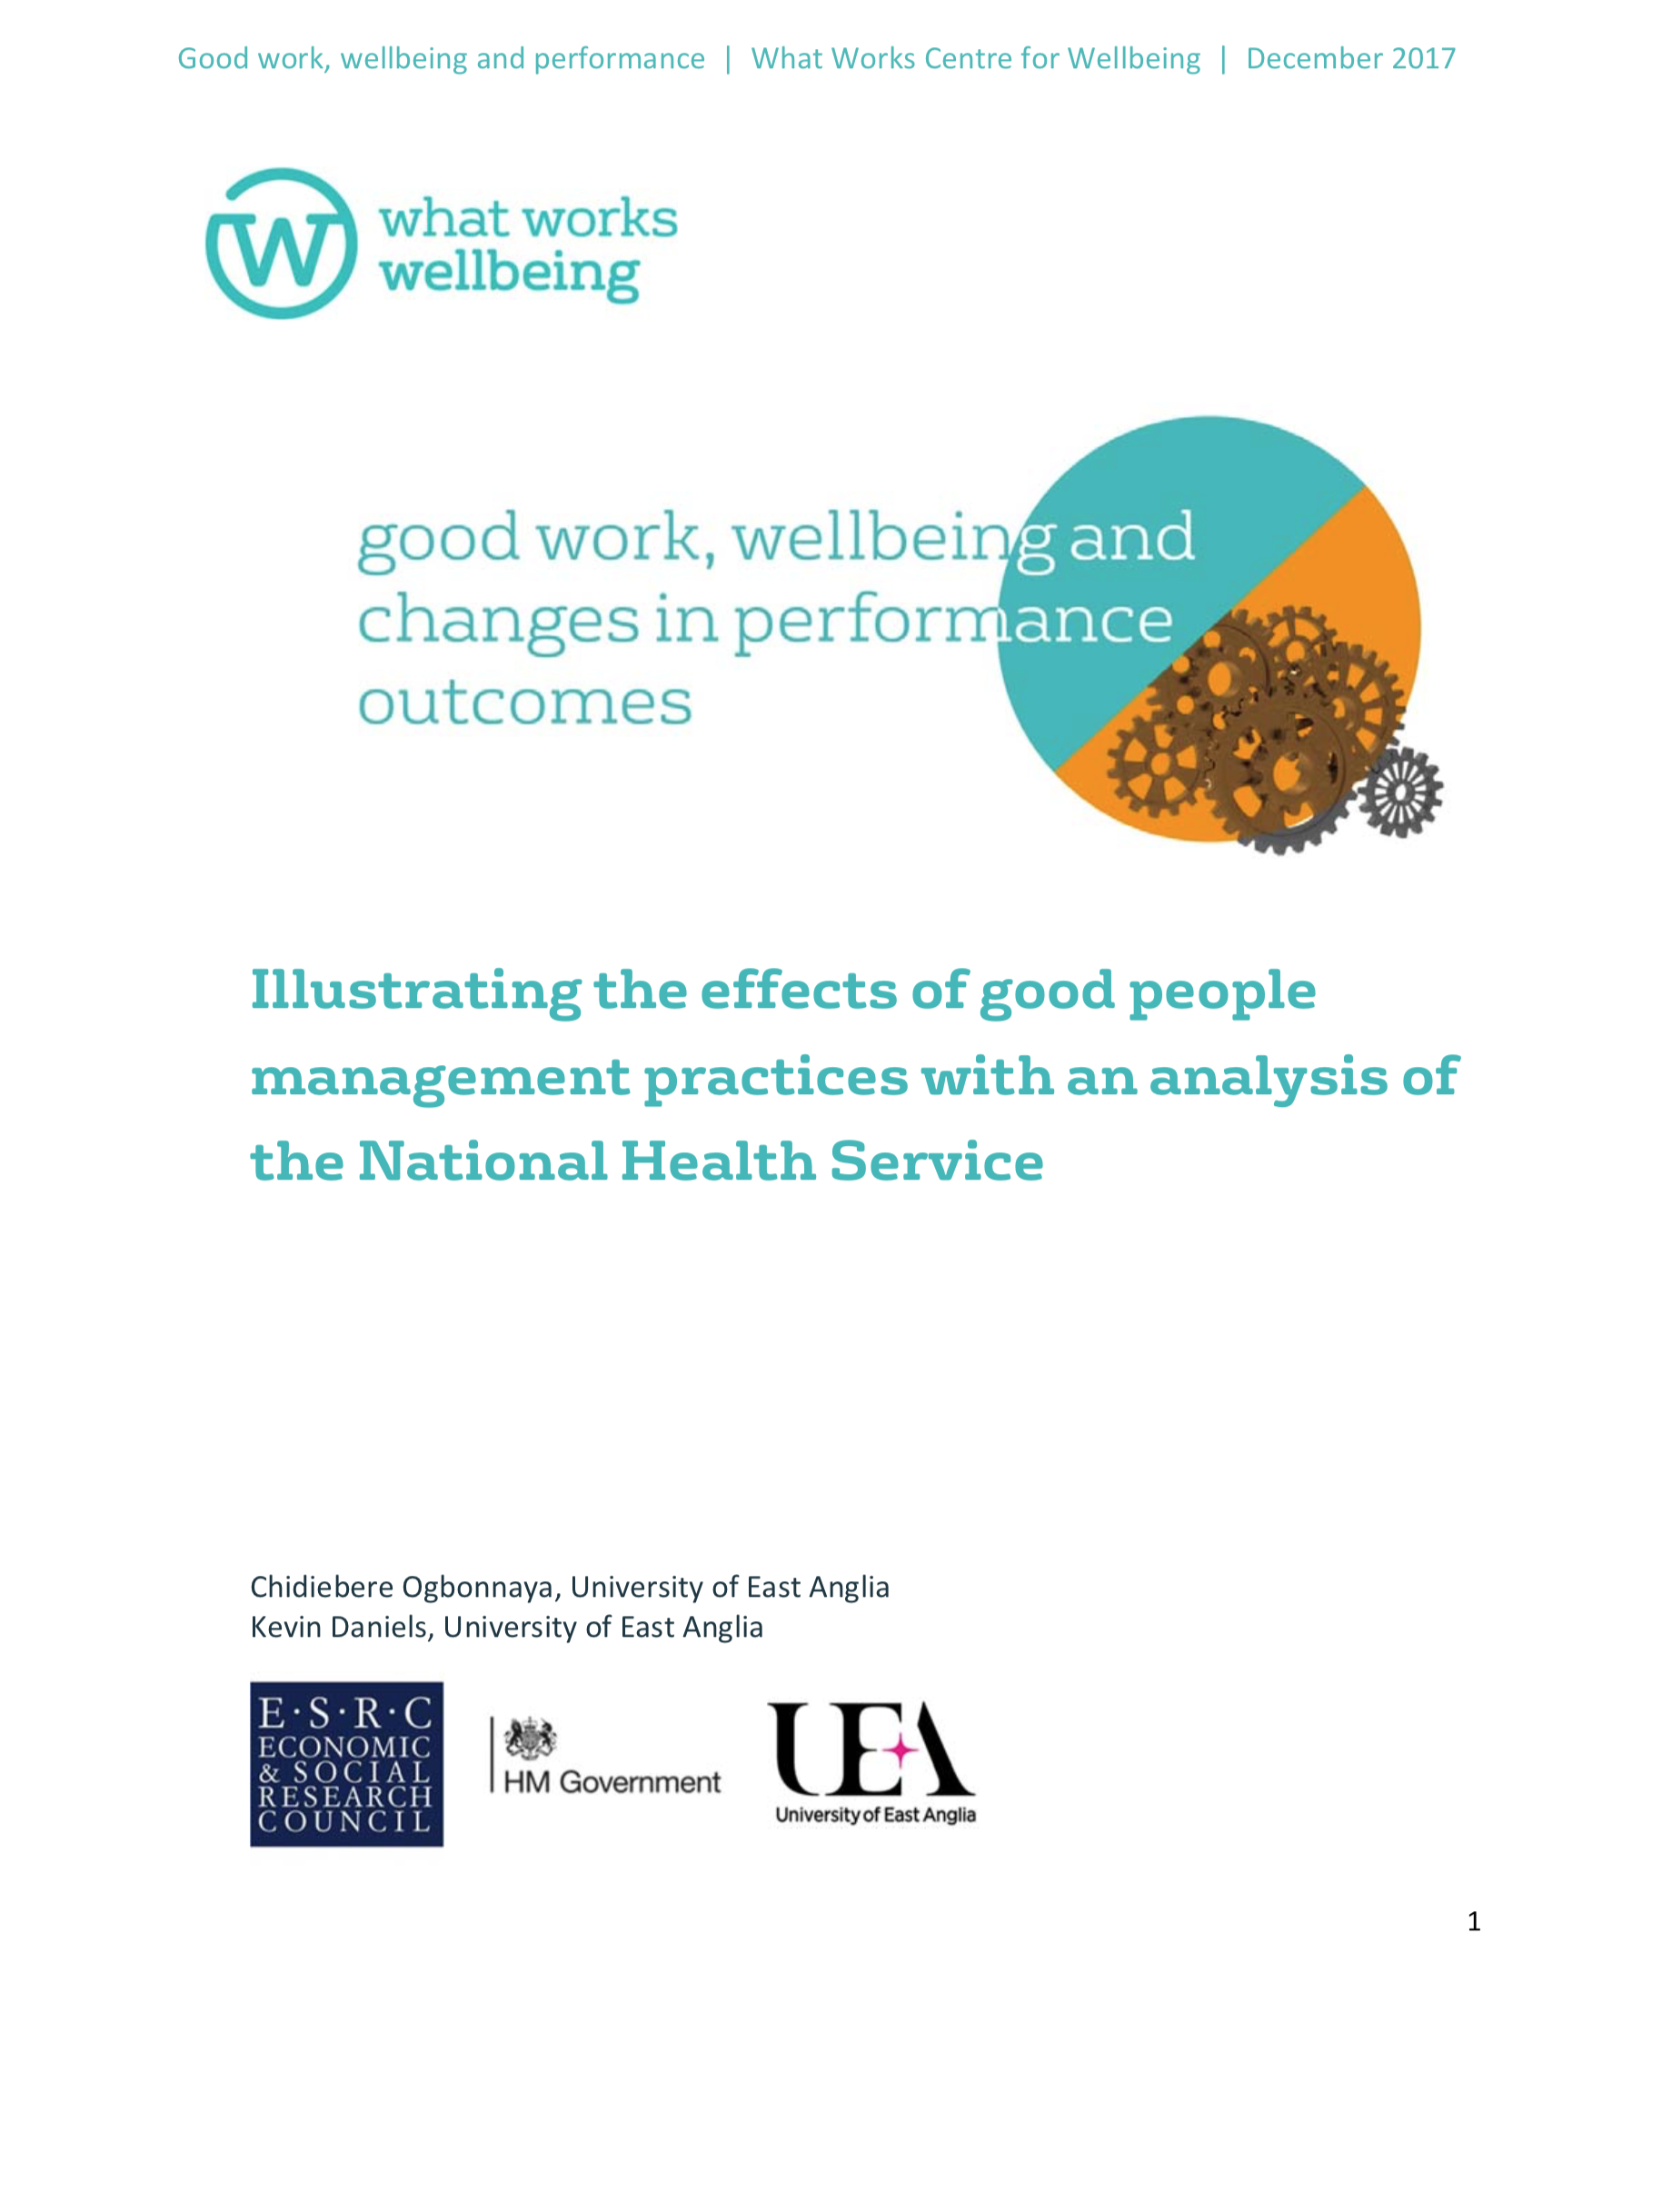 Good Work, Wellbeing And Changes In Performance Outcomes